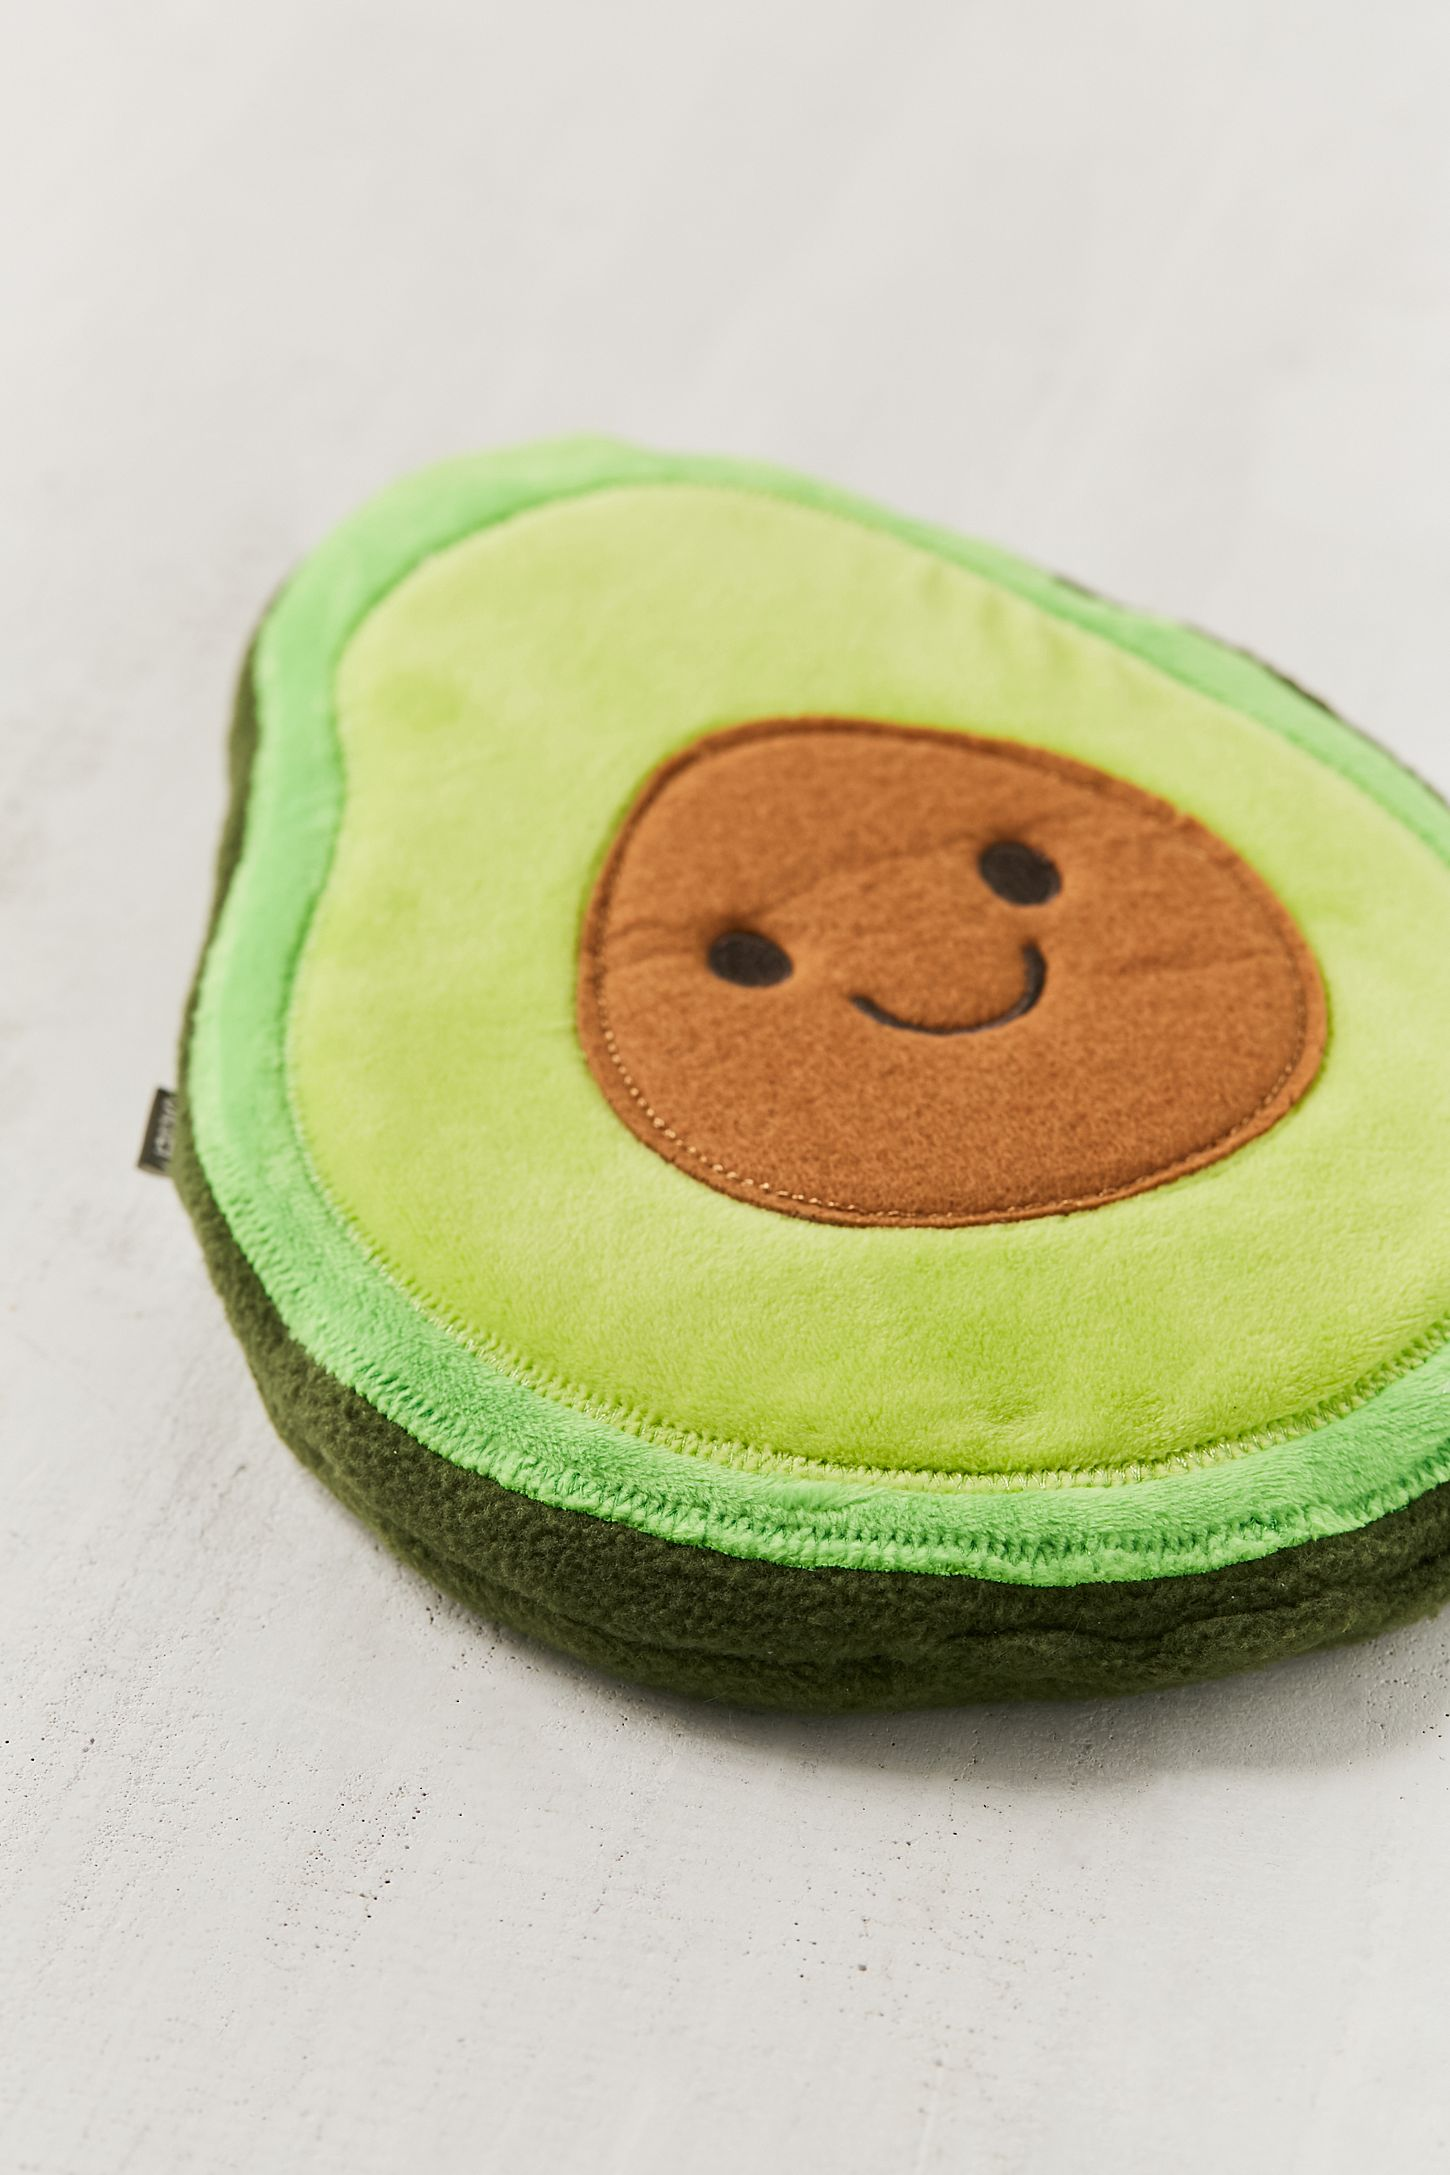 huggable avocado cooling heating pad urban outfitters